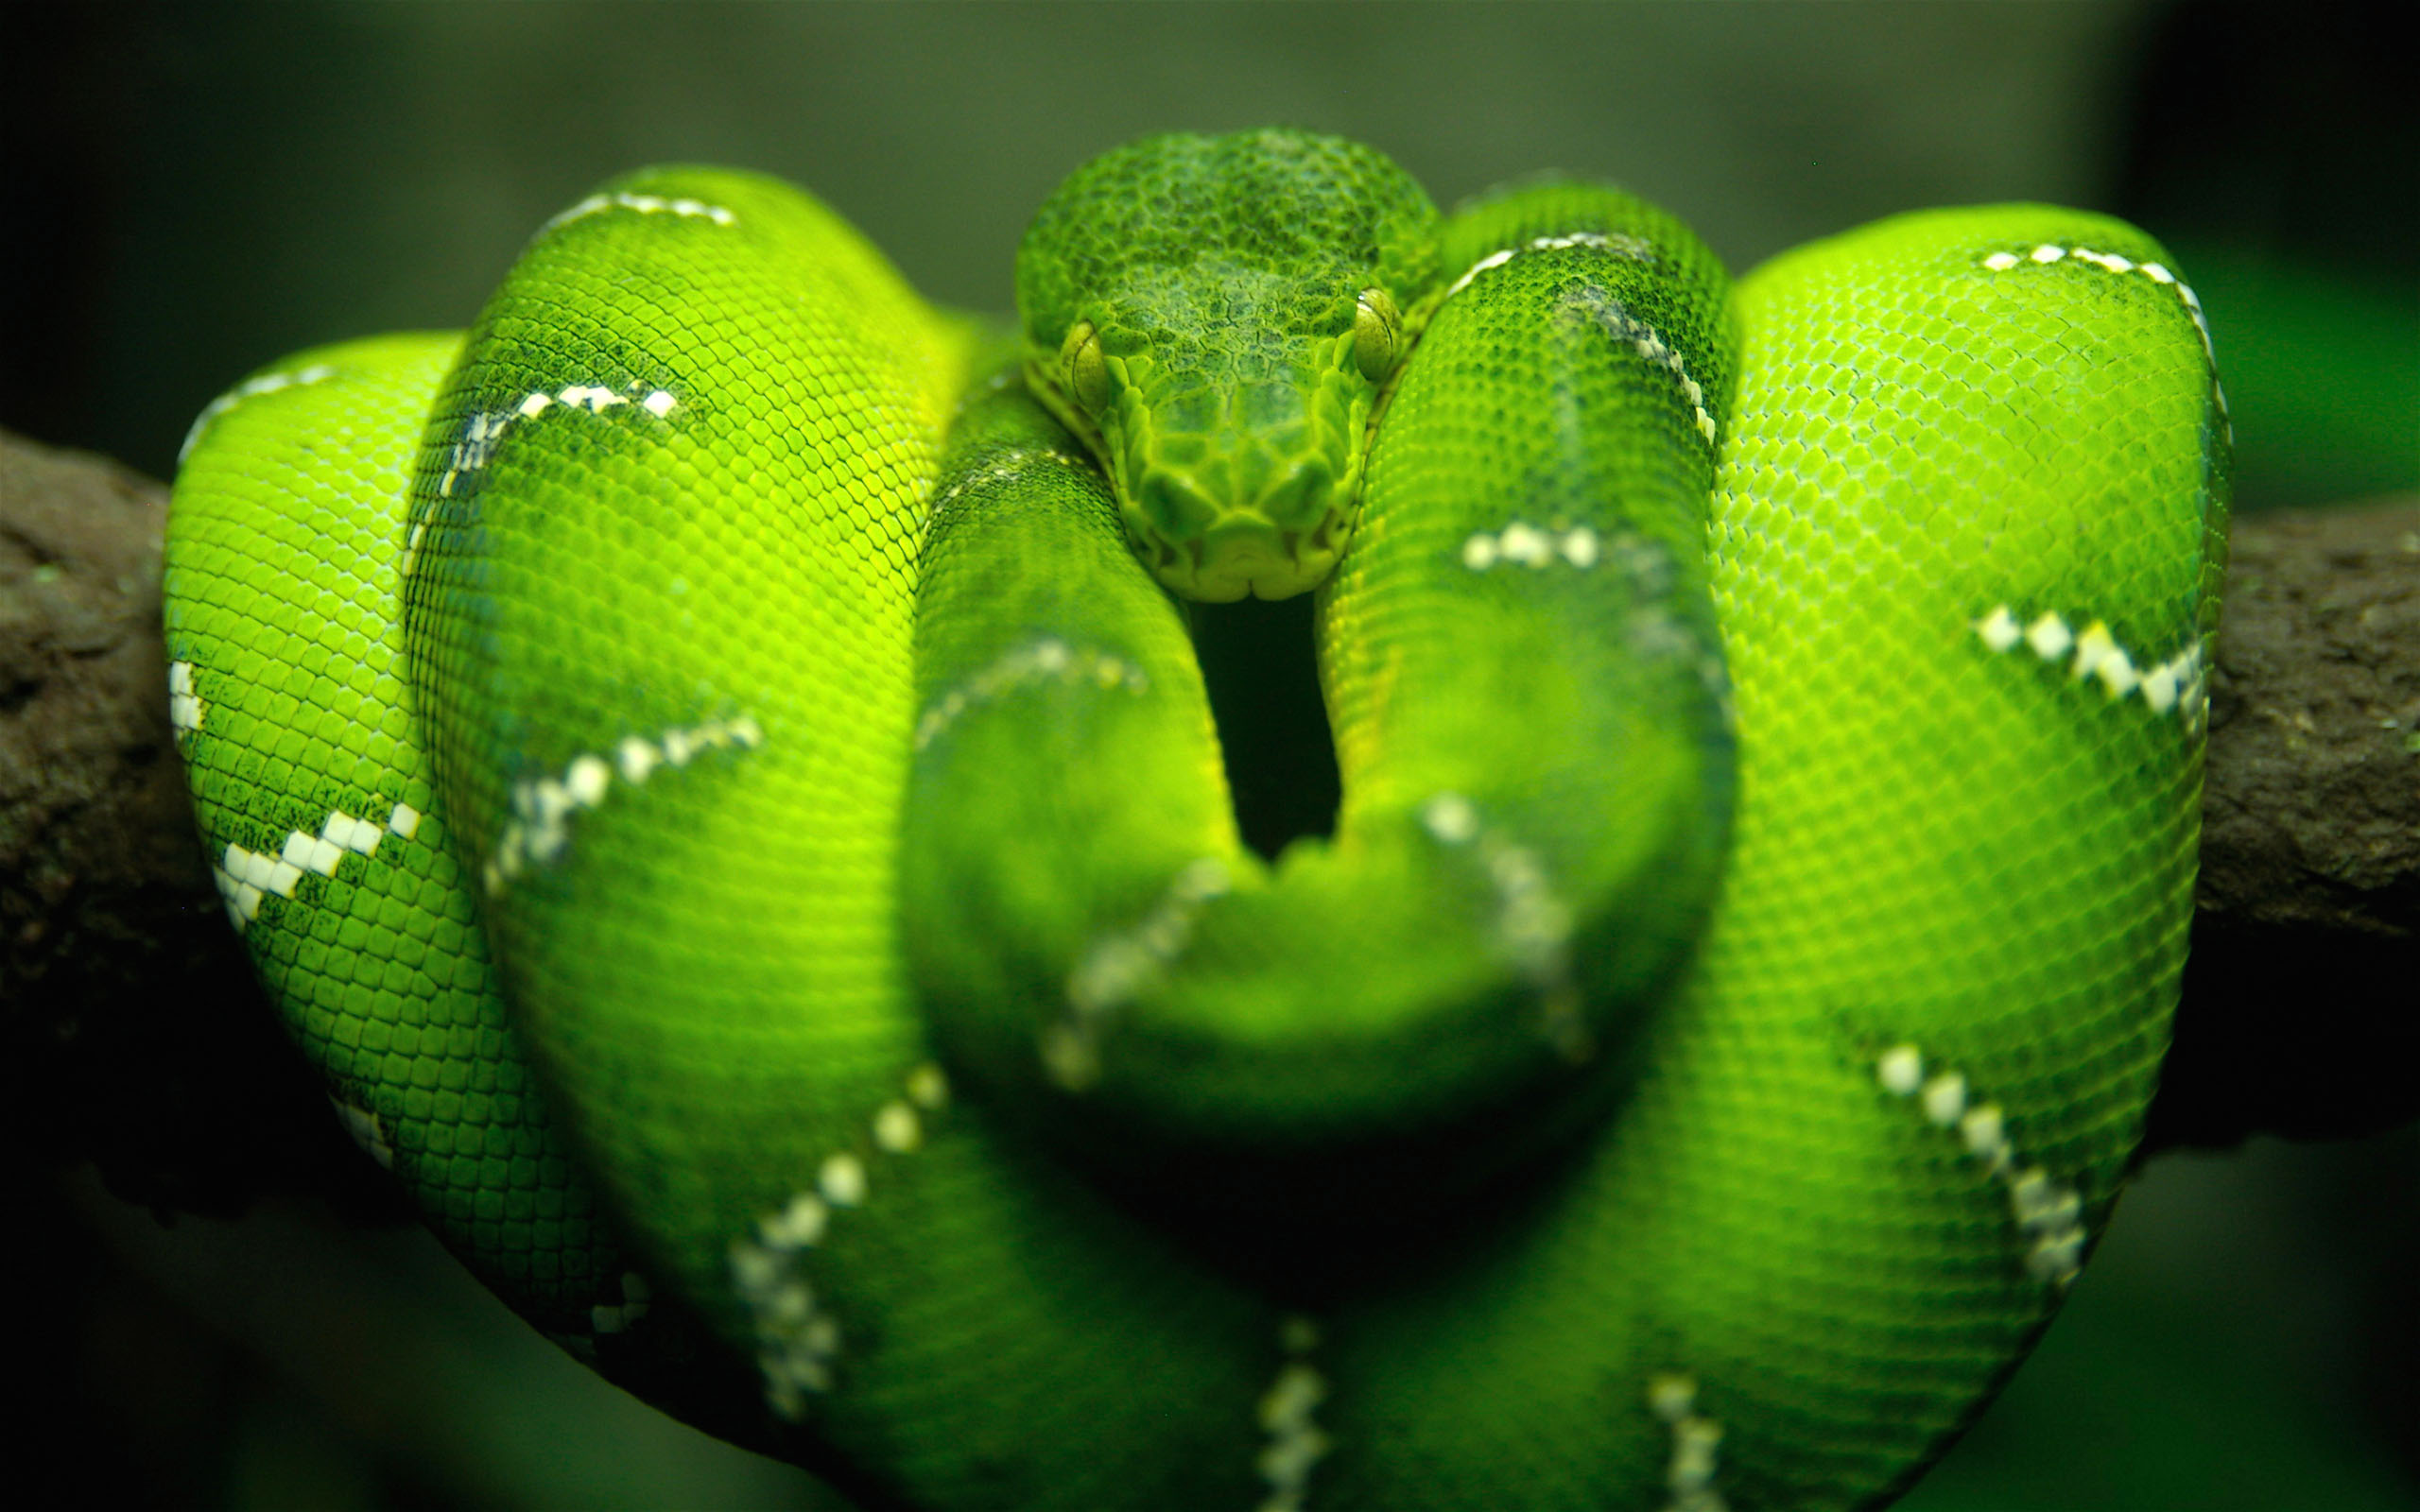 http://wallpapers.7savers.com/tree-snake-wallpapers_5030_2560x1600.jpg